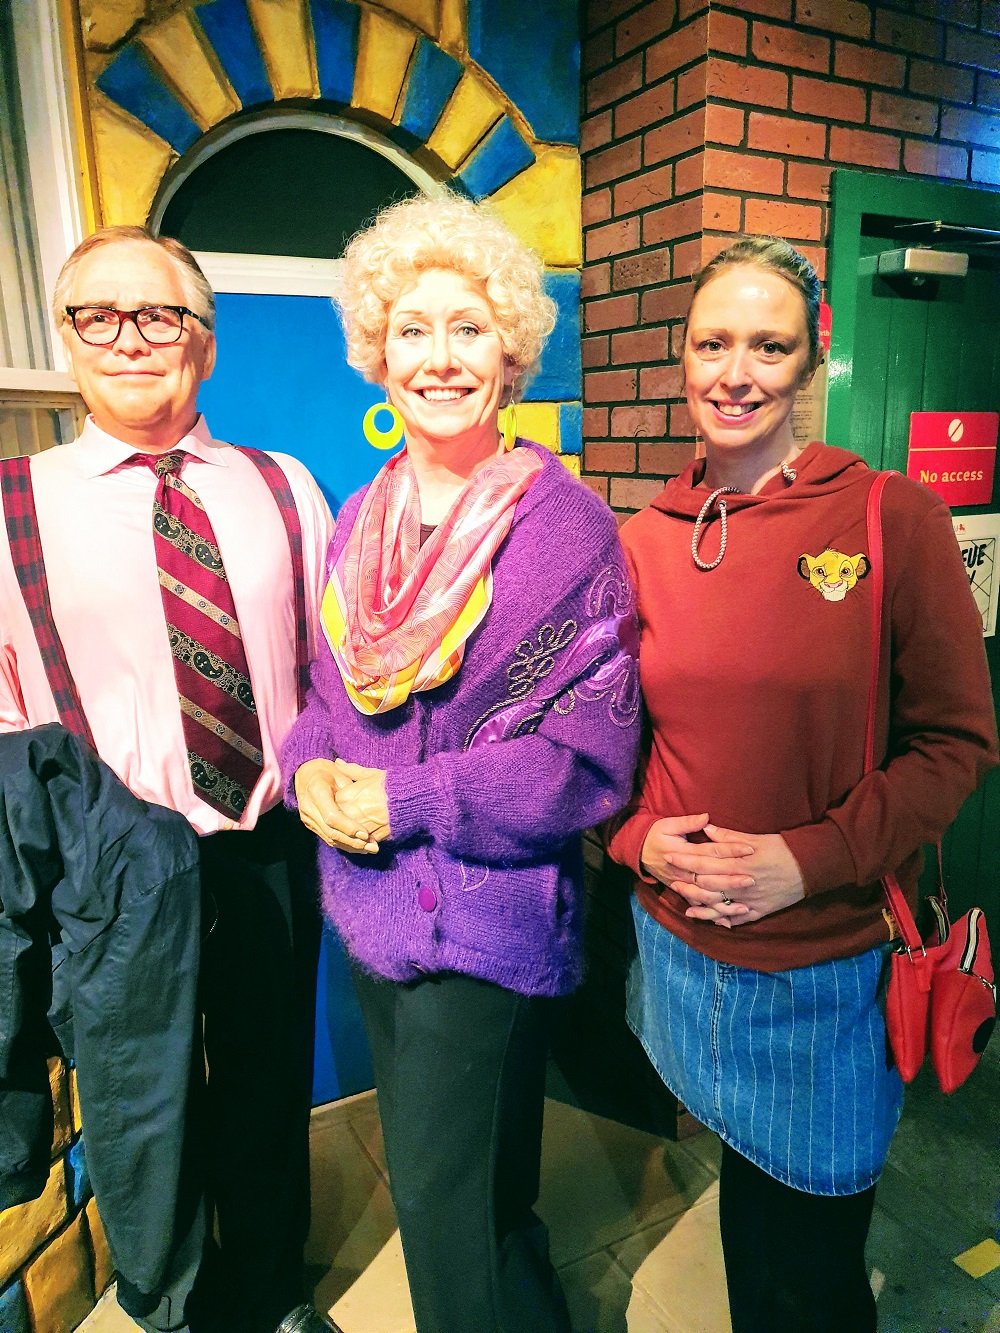 A Trip To Madame Tussauds - Coronation Street